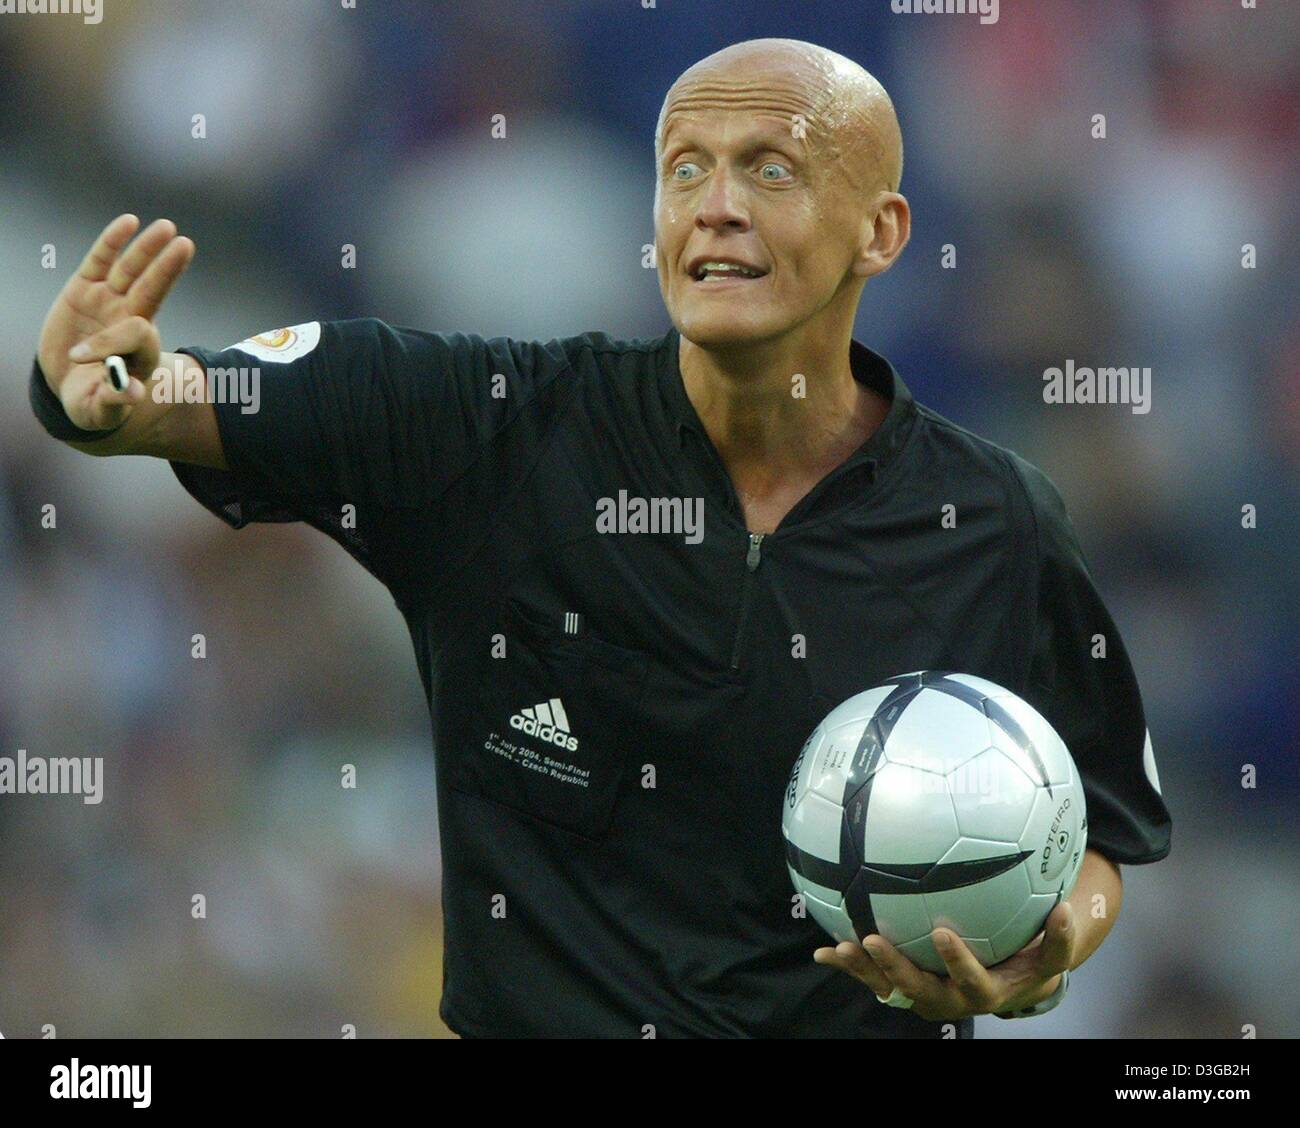 b574fc87307 (dpa) - Italian referee Pierluigi Collina gestures and displays a strong  facial expression during